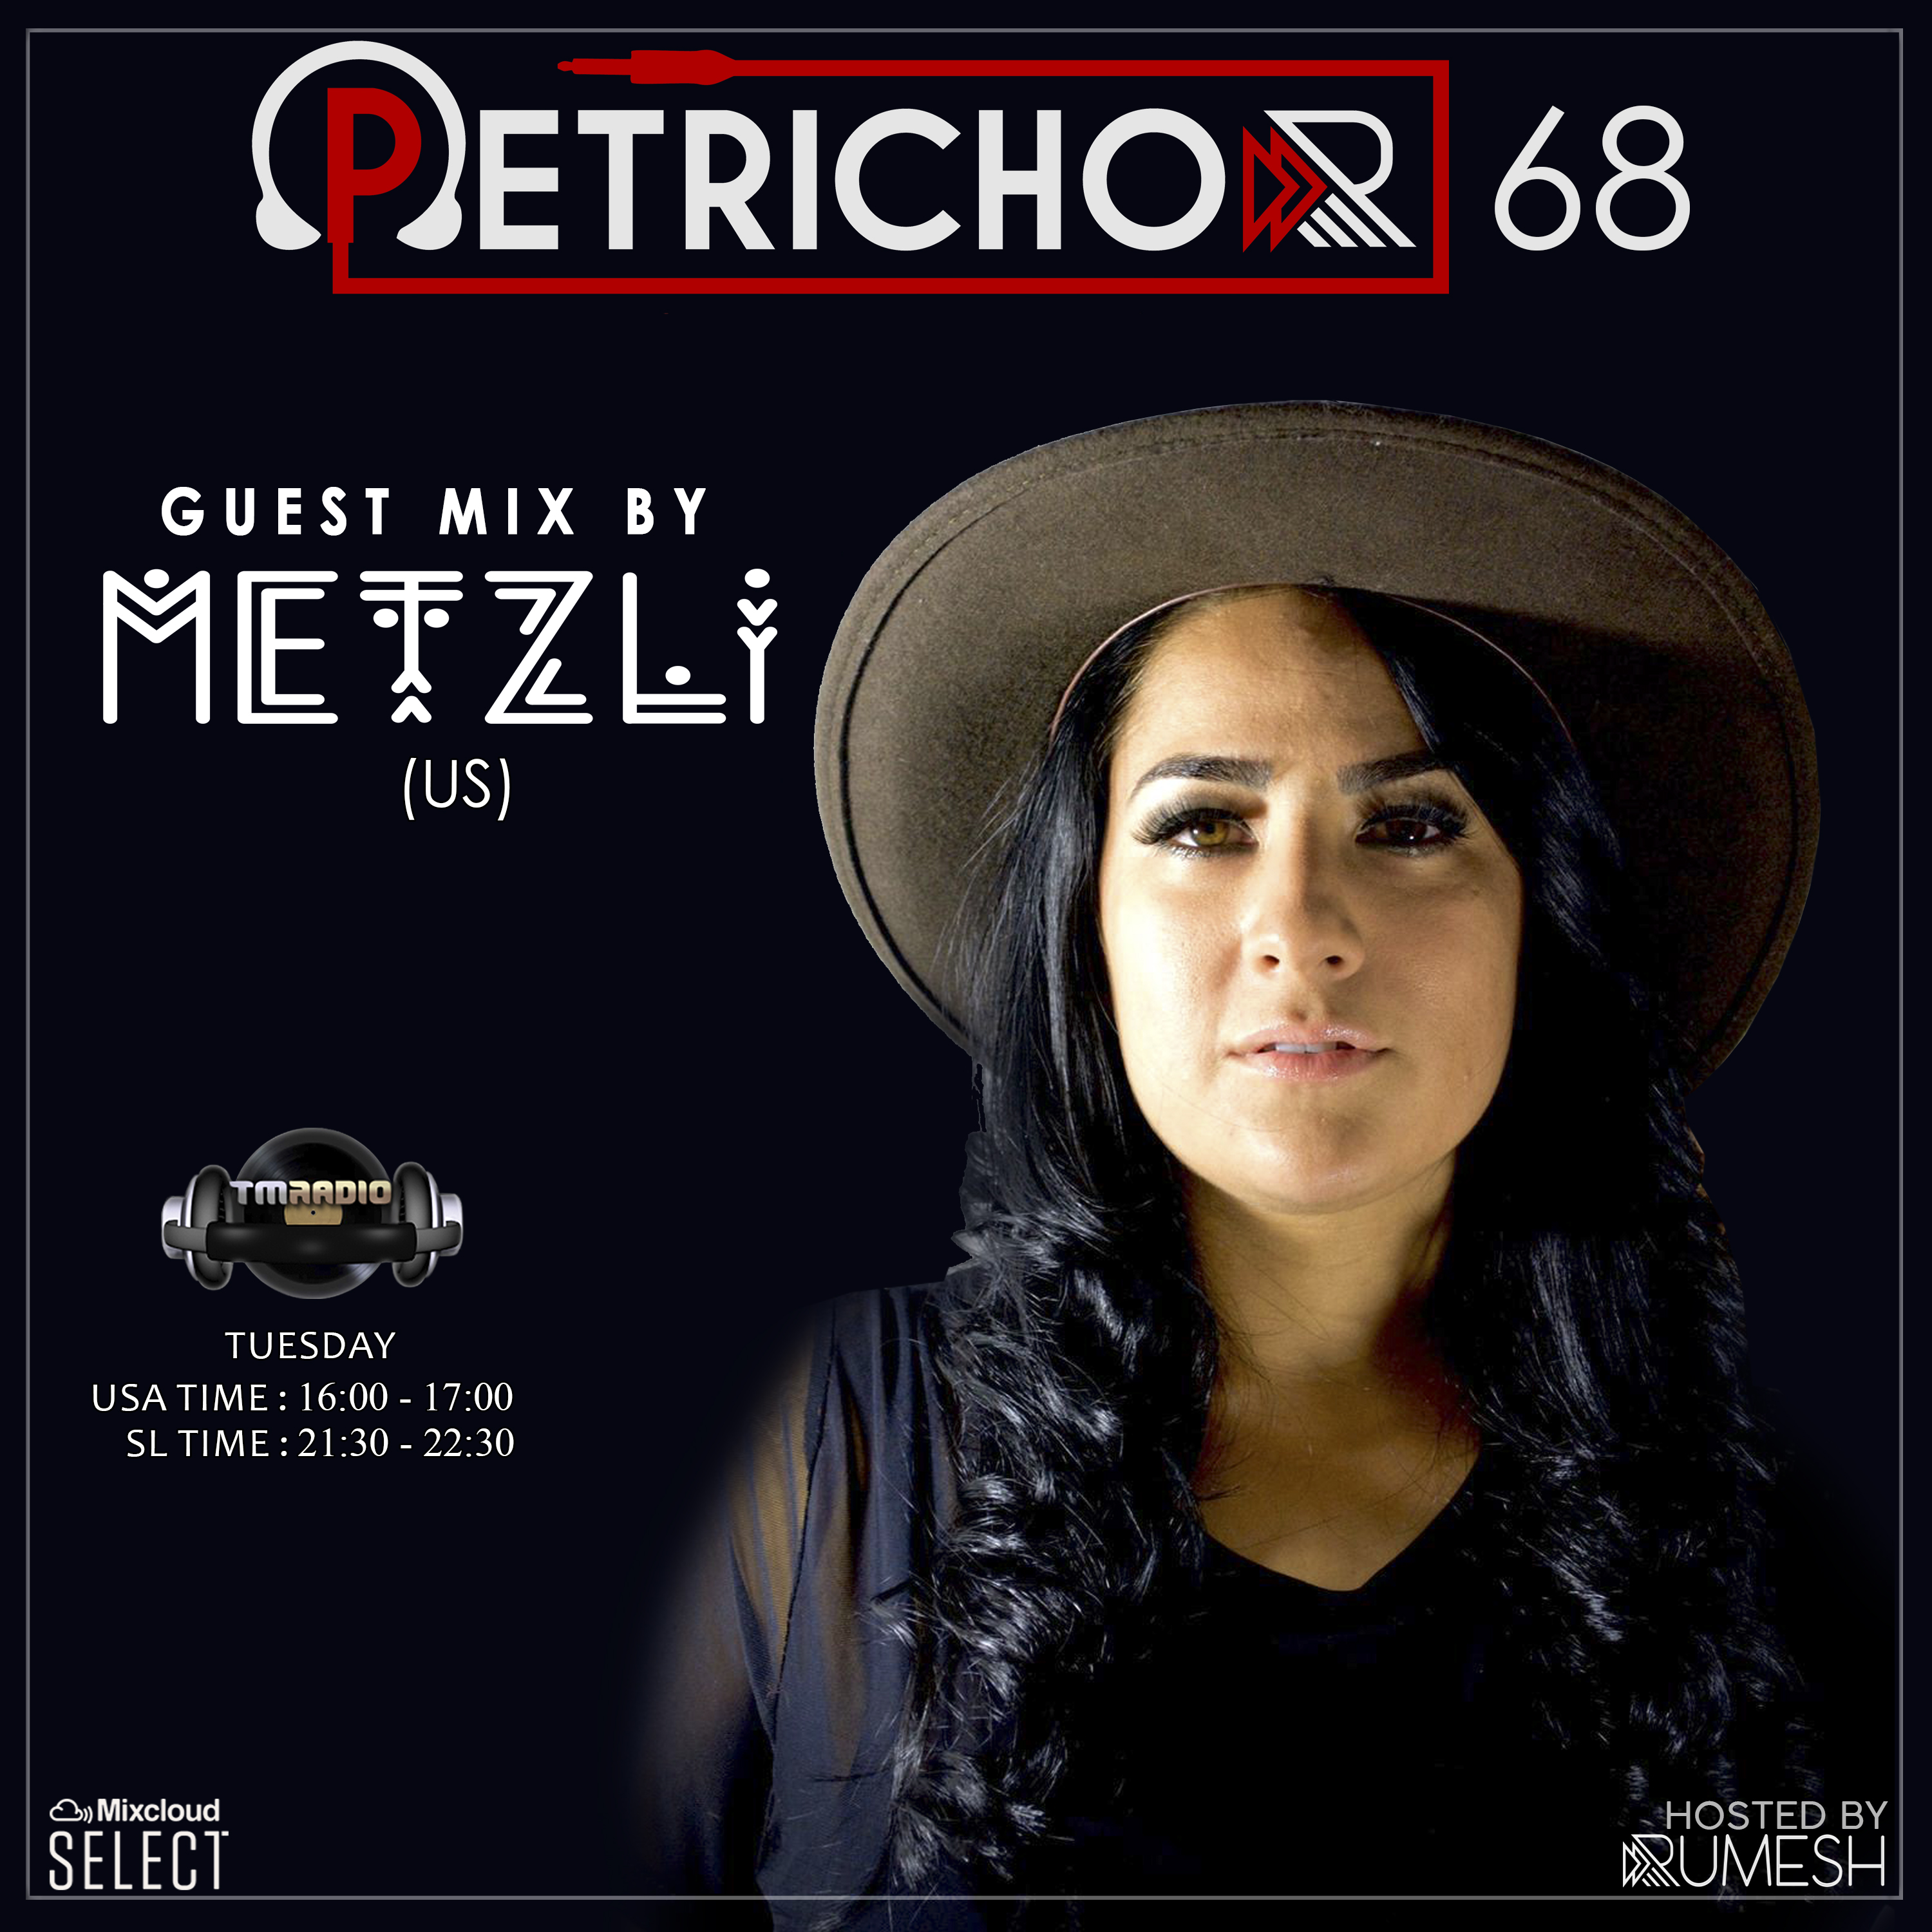 Petrichor :: Petrichor 68 guest mix by Metzli (US) (aired on February 25th) banner logo